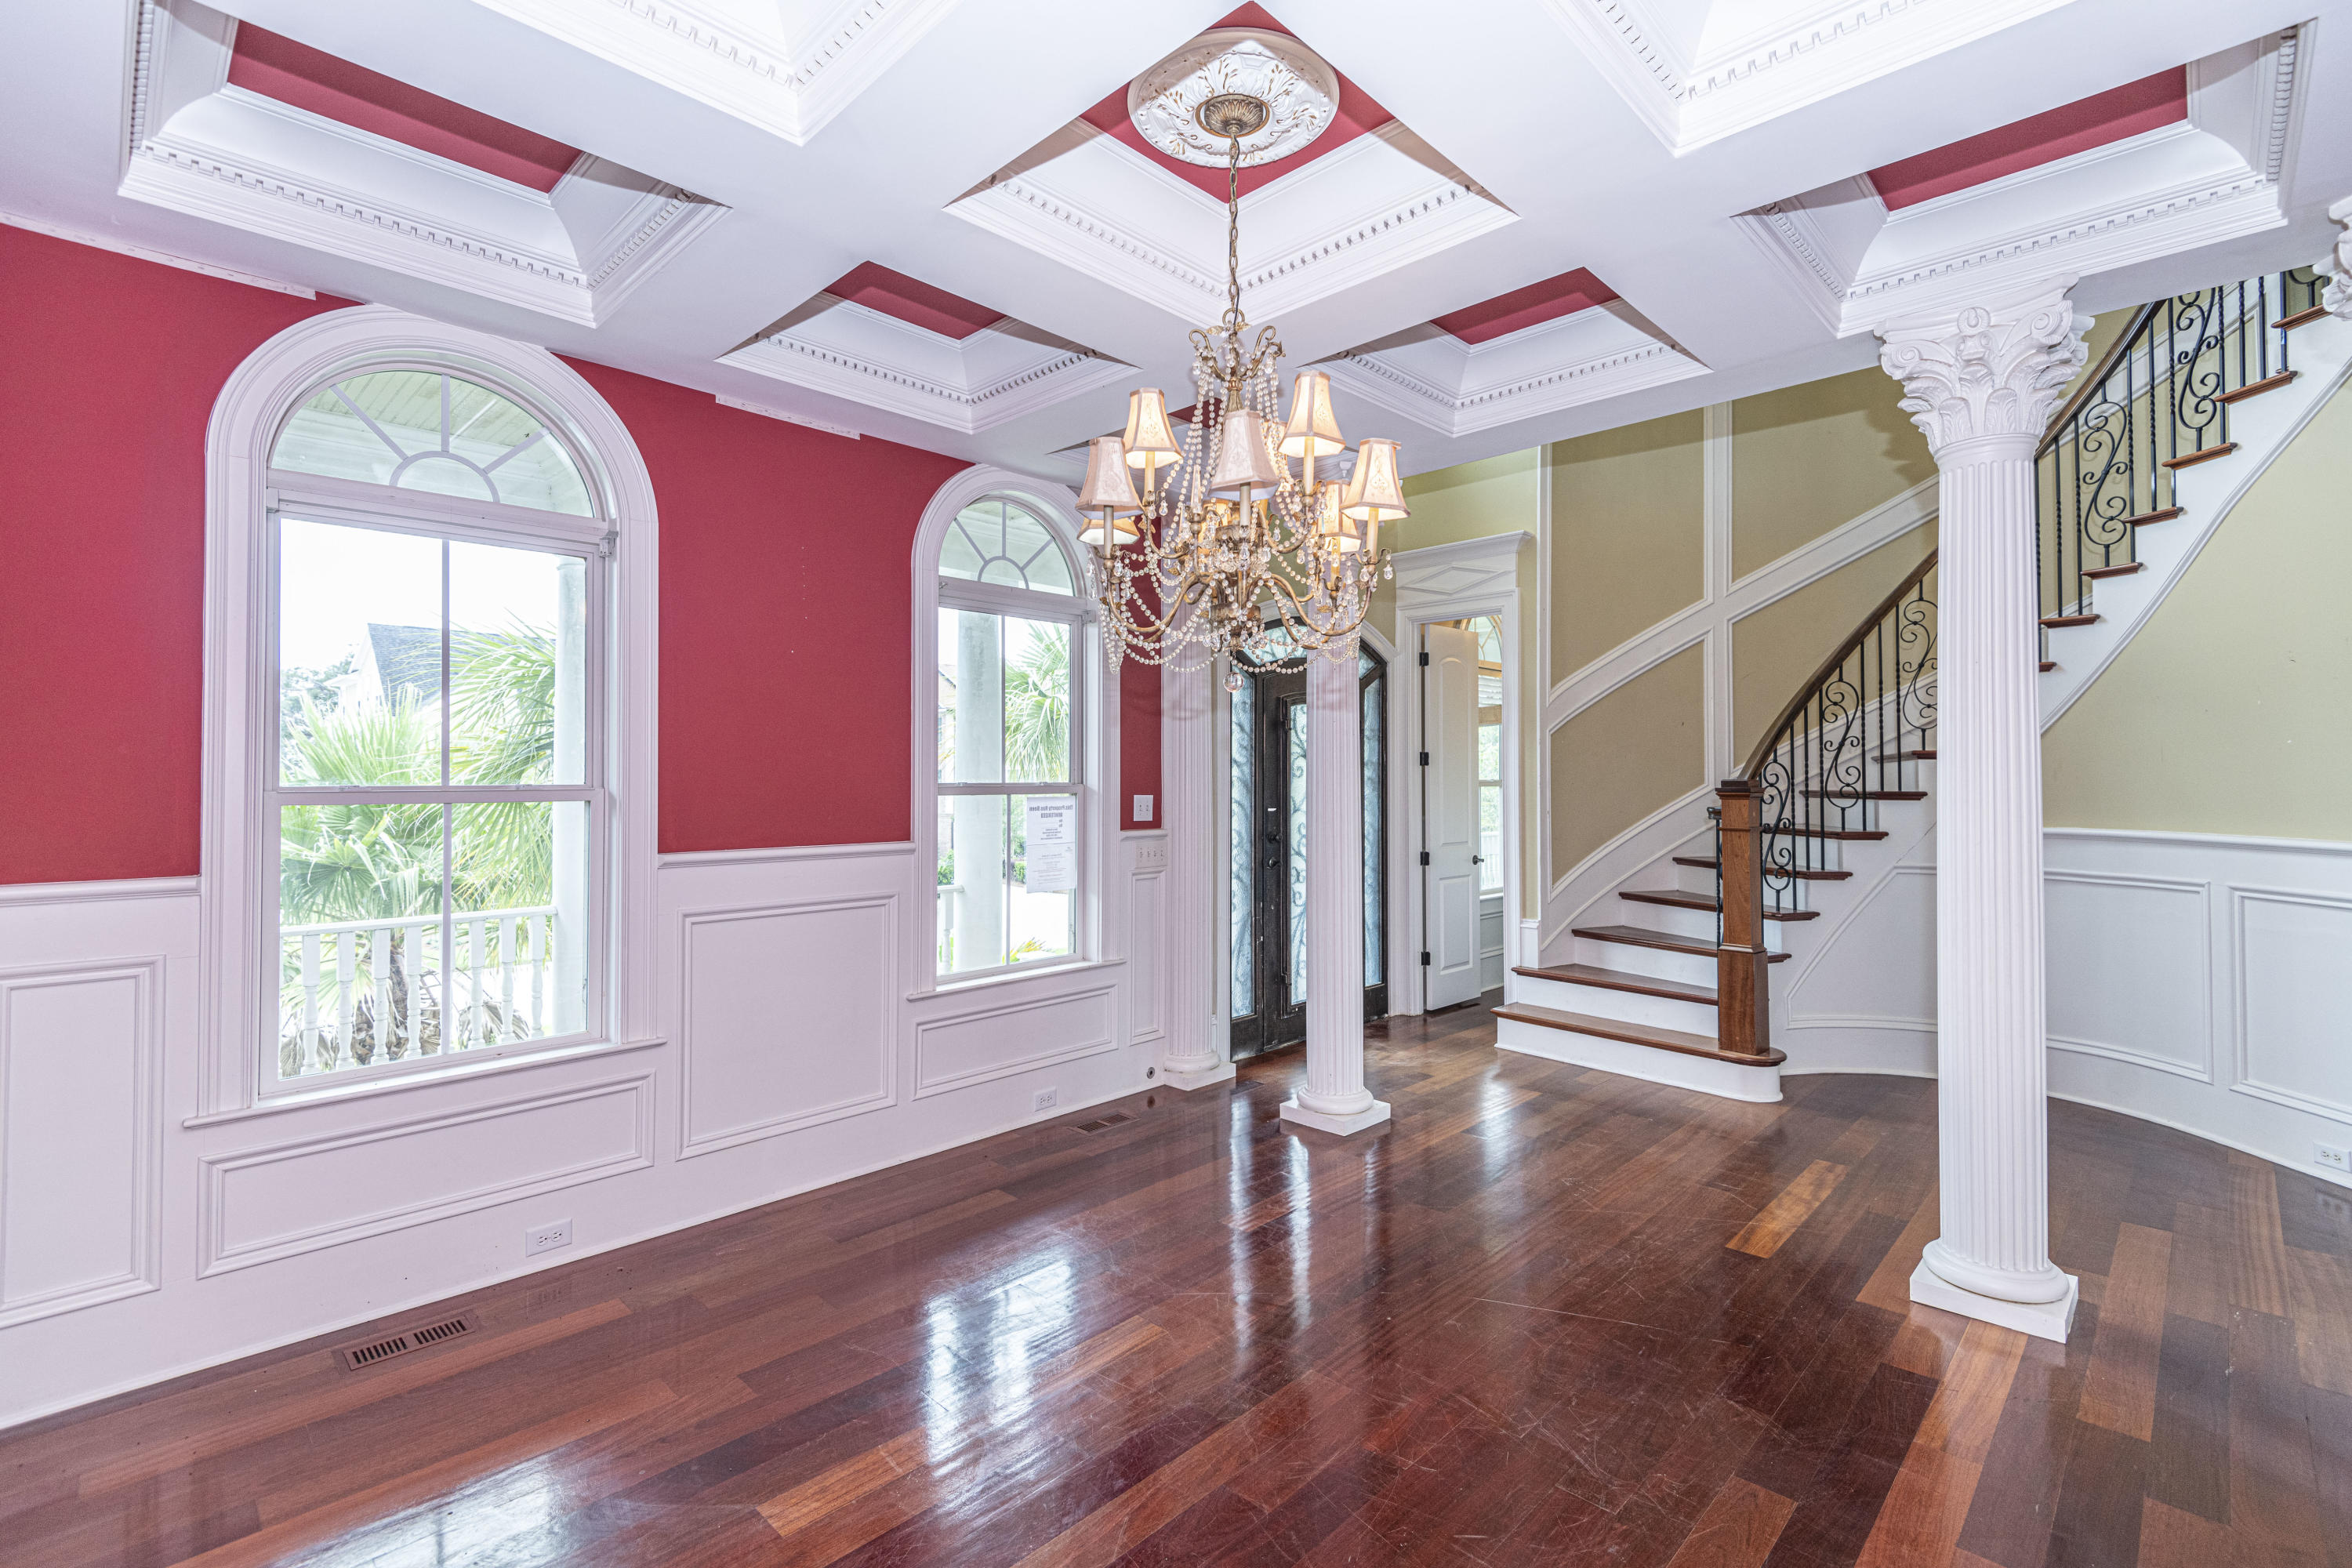 Rivertowne Country Club Homes For Sale - 1593 Rivertowne Country Club, Mount Pleasant, SC - 7